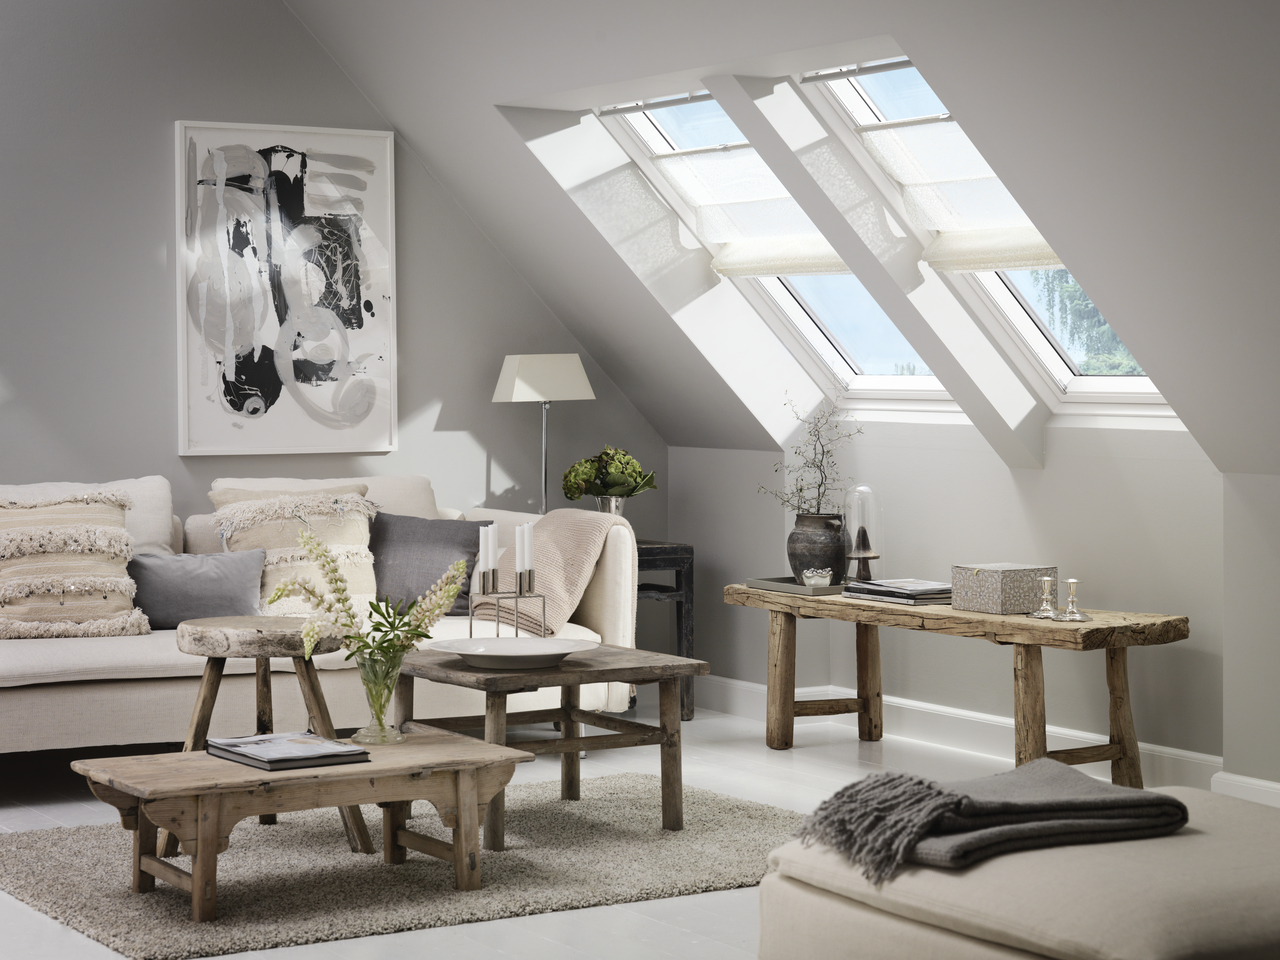 Le nuove tende a pacchetto velux for Tende per velux